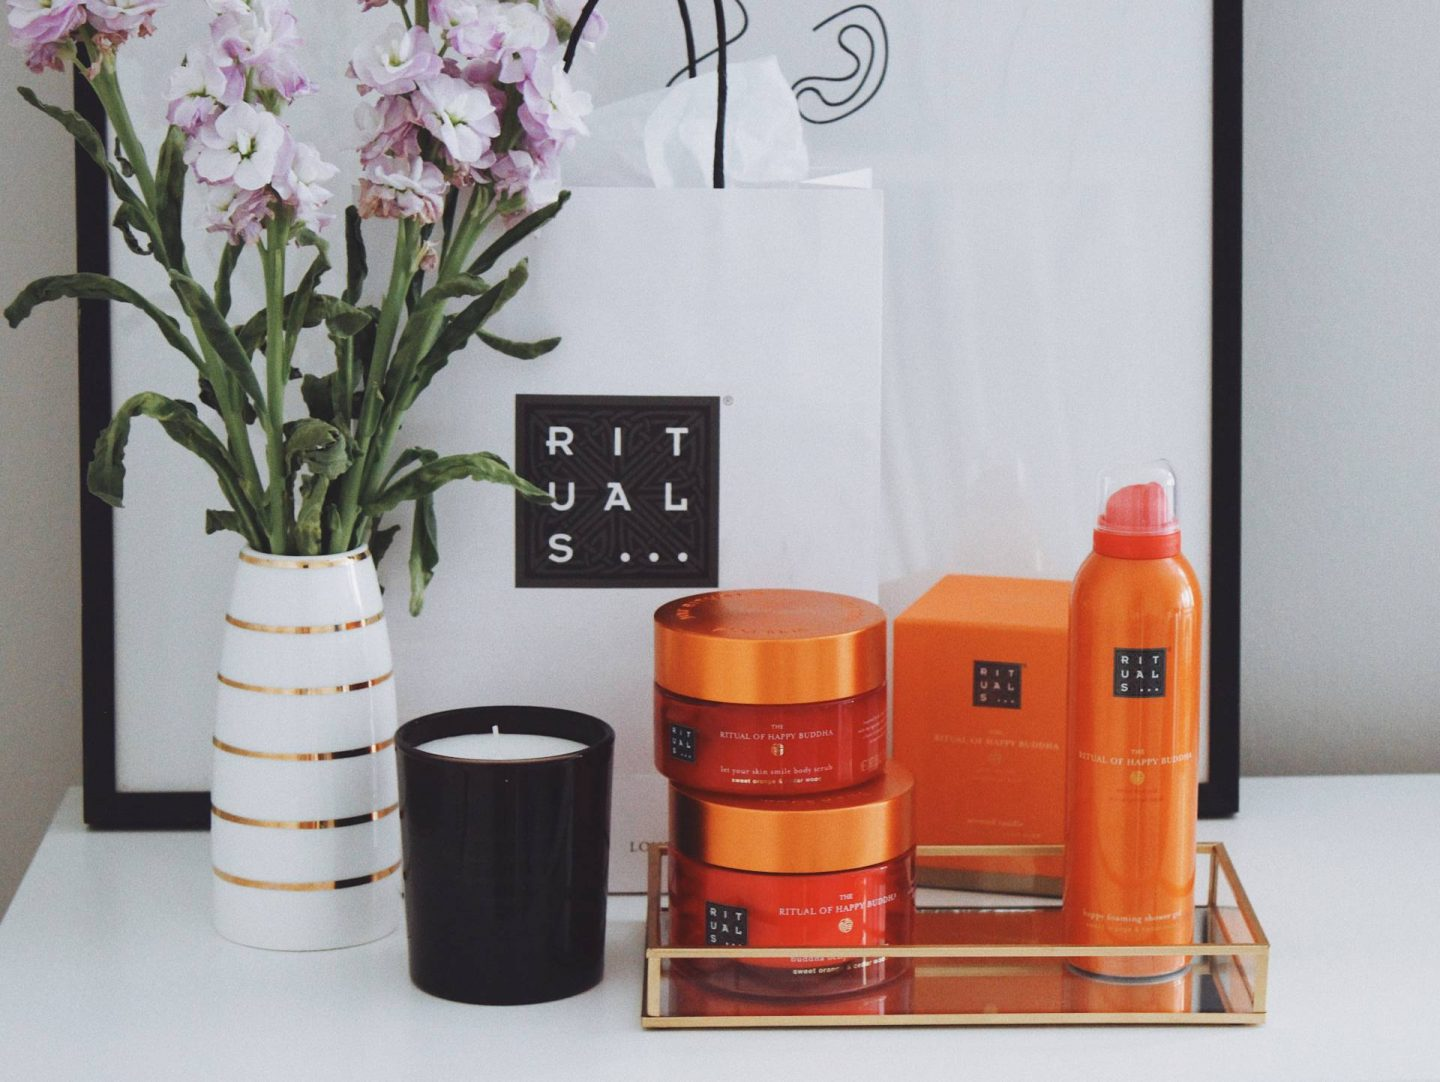 Rituals body care and home fragrance products